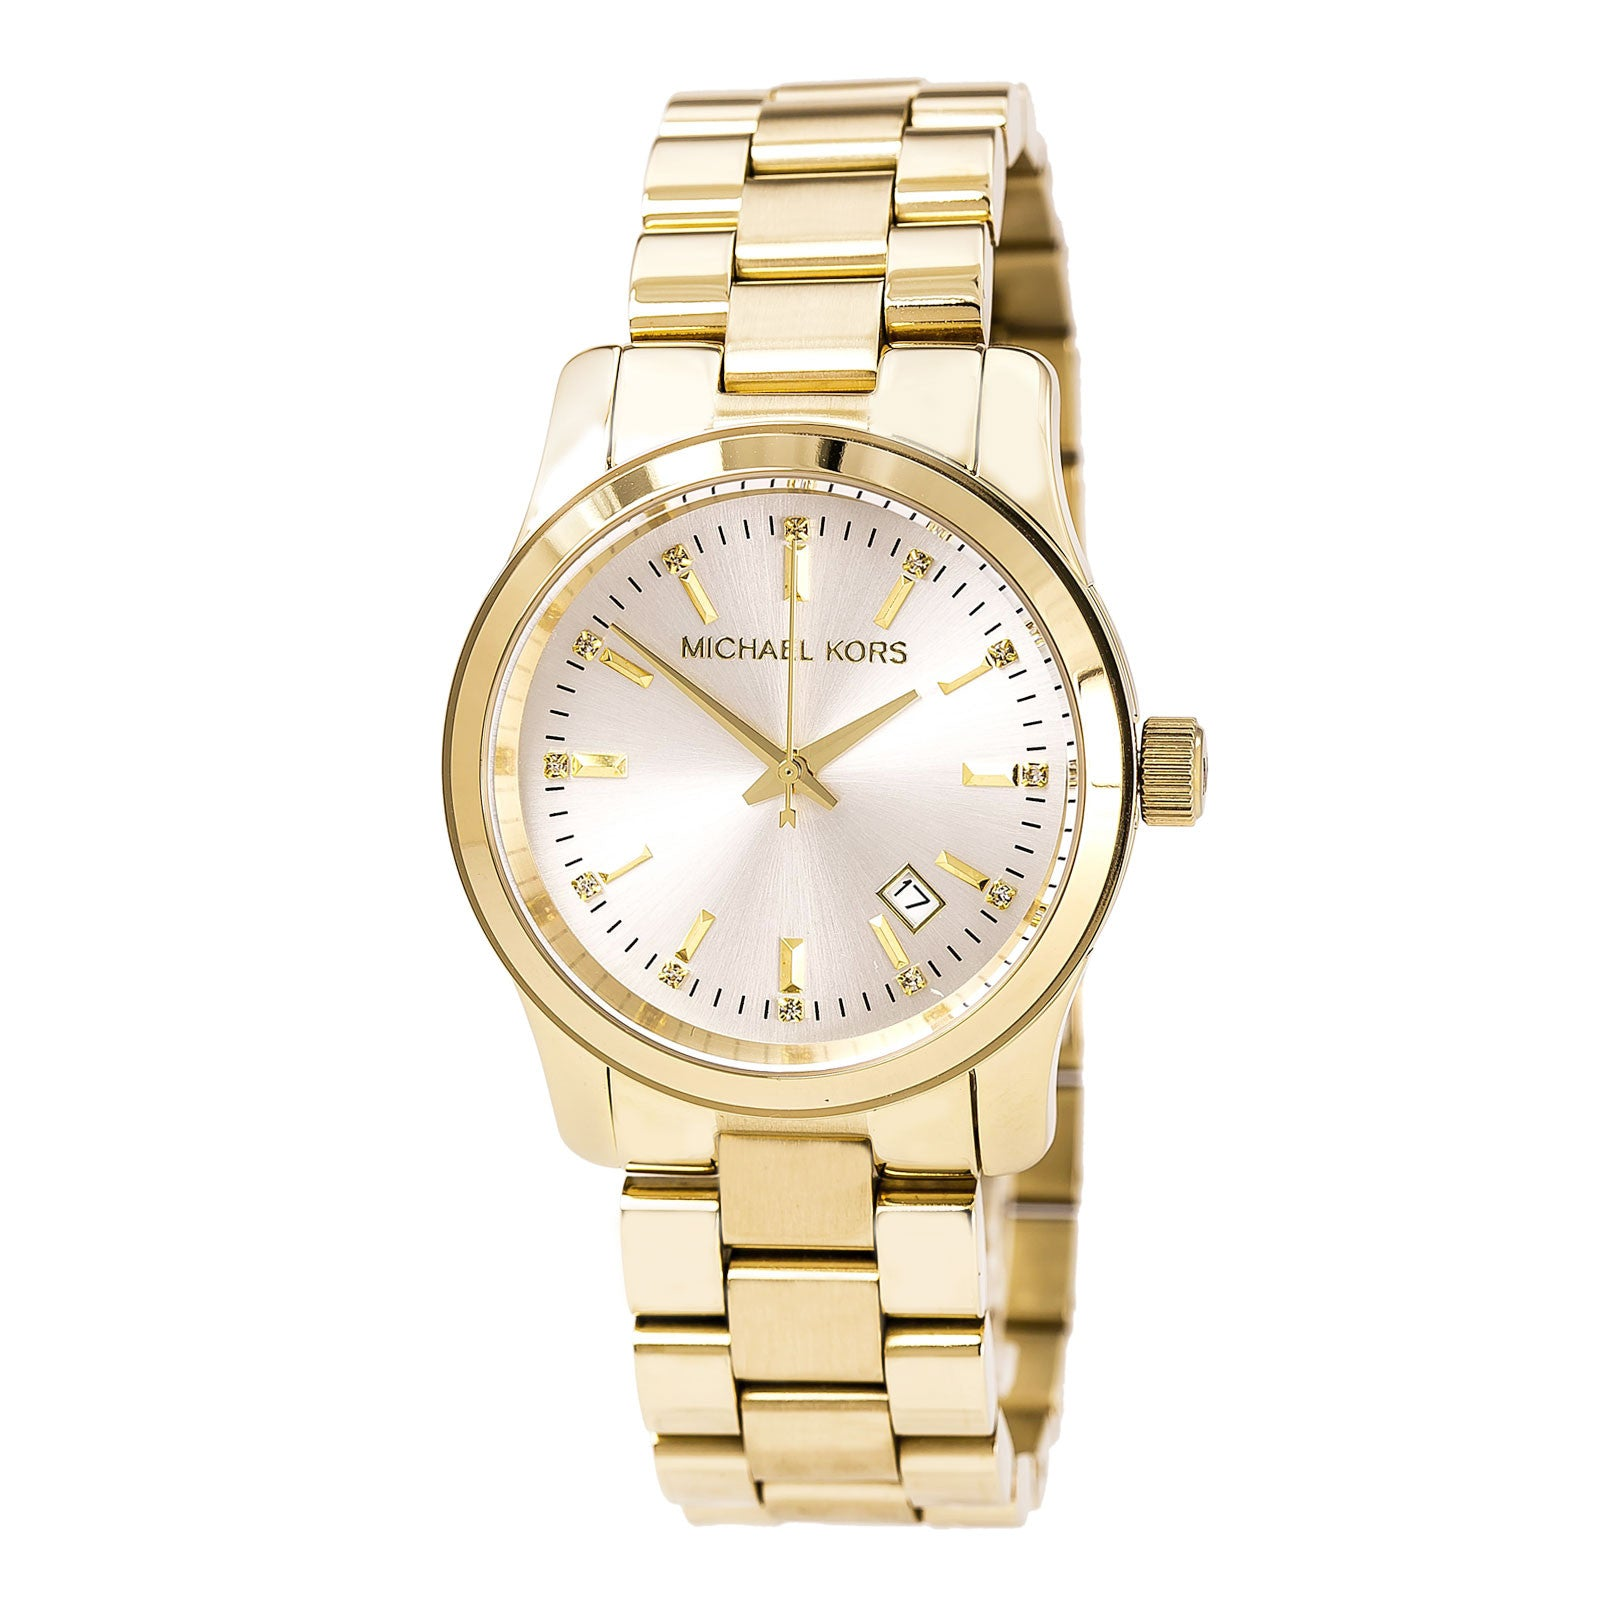 Michael Kors MK5177 Lady's Gold Dial Yellow Steel Bracelet Watch